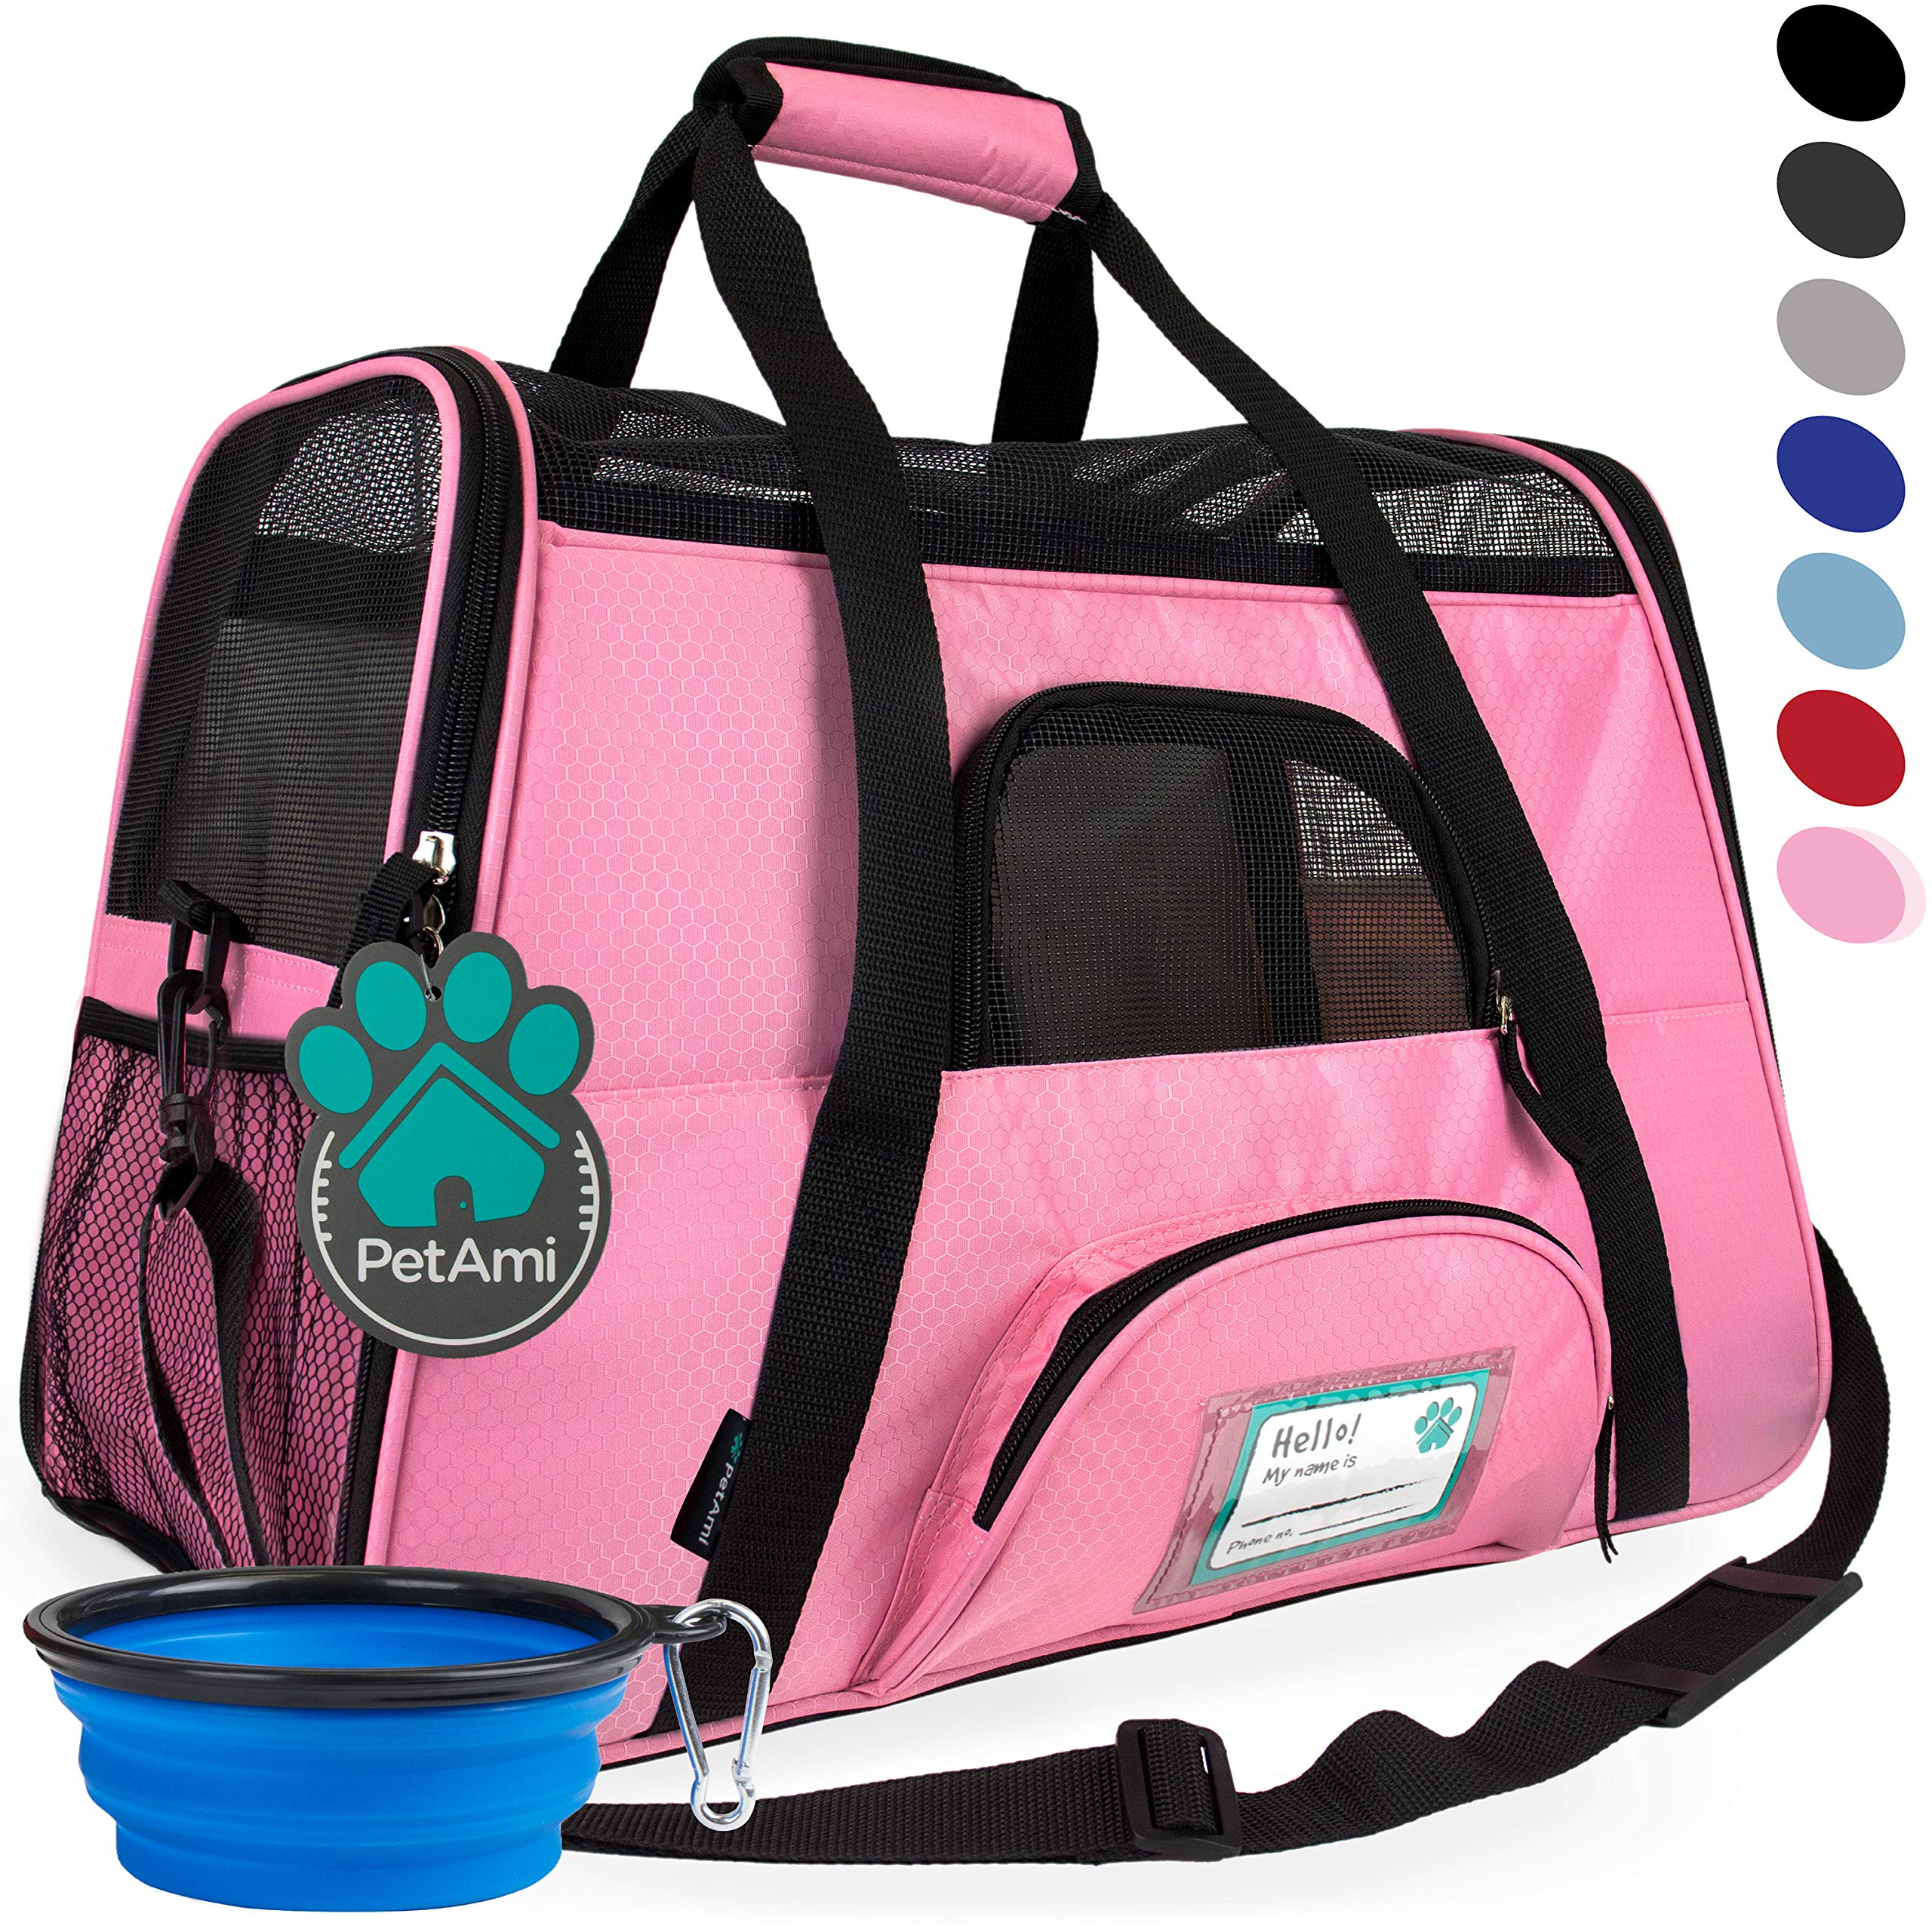 PetAmi Premium Airline Approved Soft-Sided Pet Travel Carrier | Ideal for Small - Medium Sized Cats, Dogs, and Pets | Ventilated, Comfortable Design with Safety Features (Large, Pink) by PetAmi